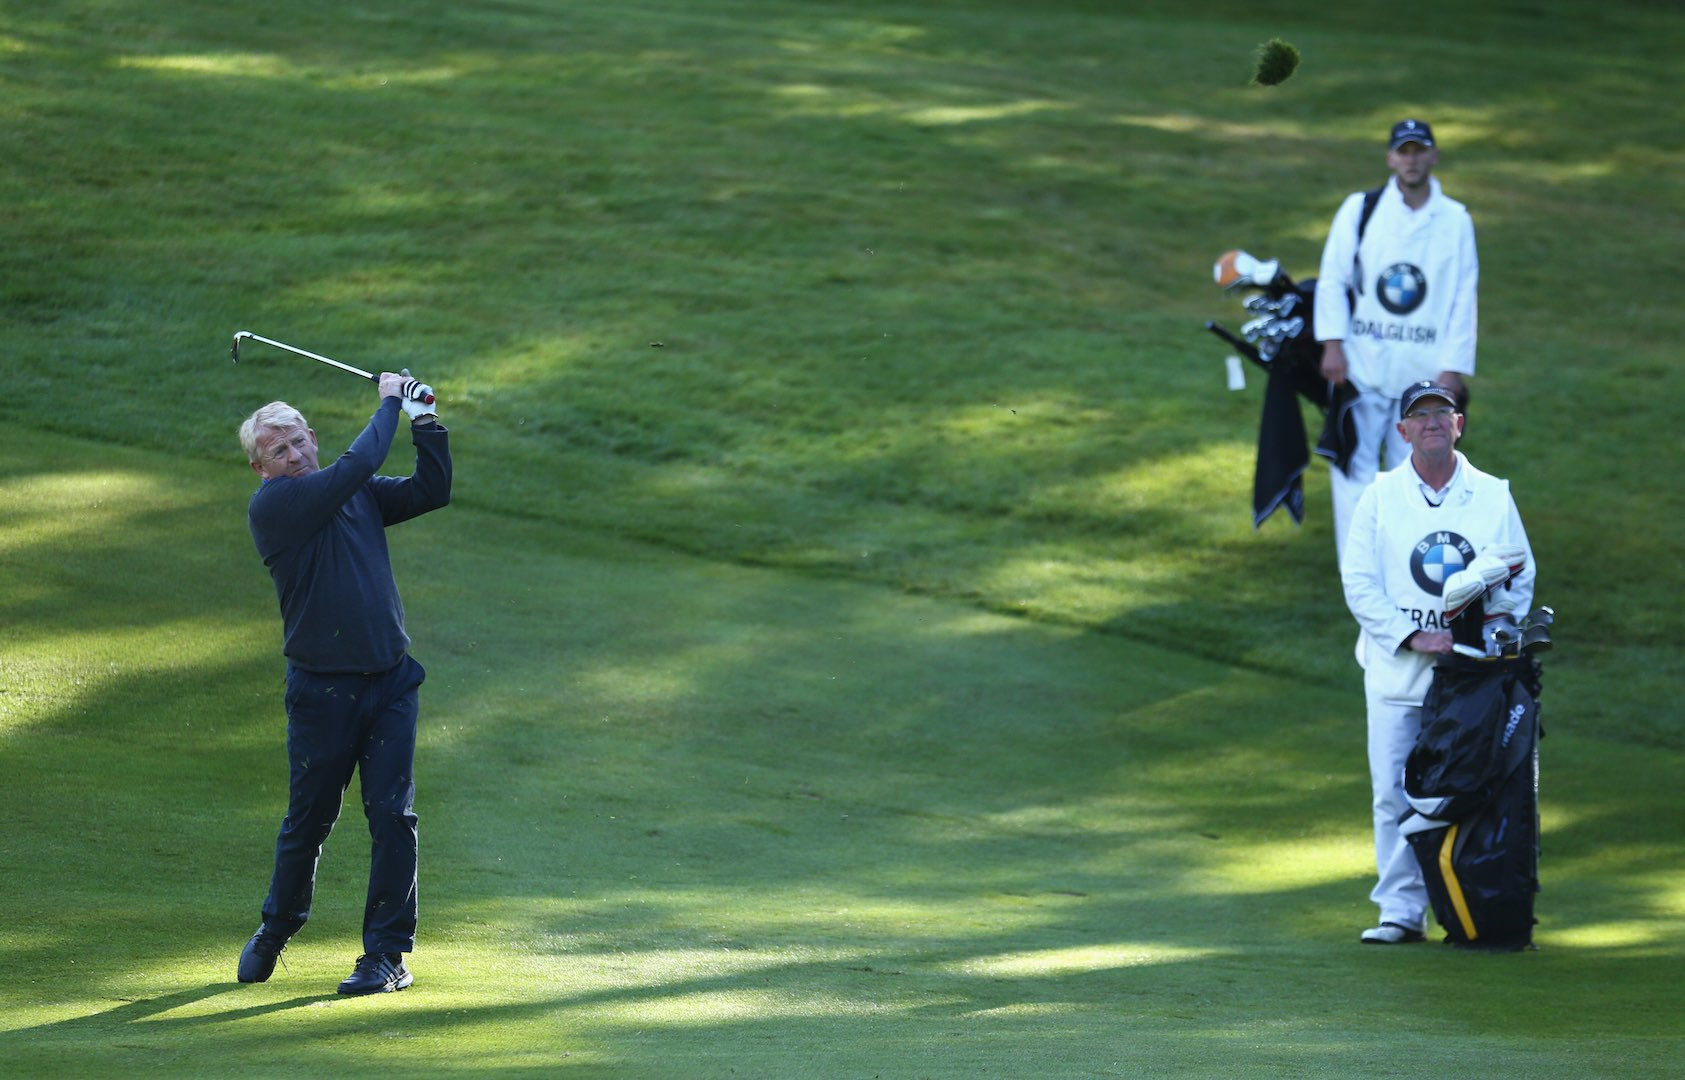 Gordon Strachan's golf nightmare